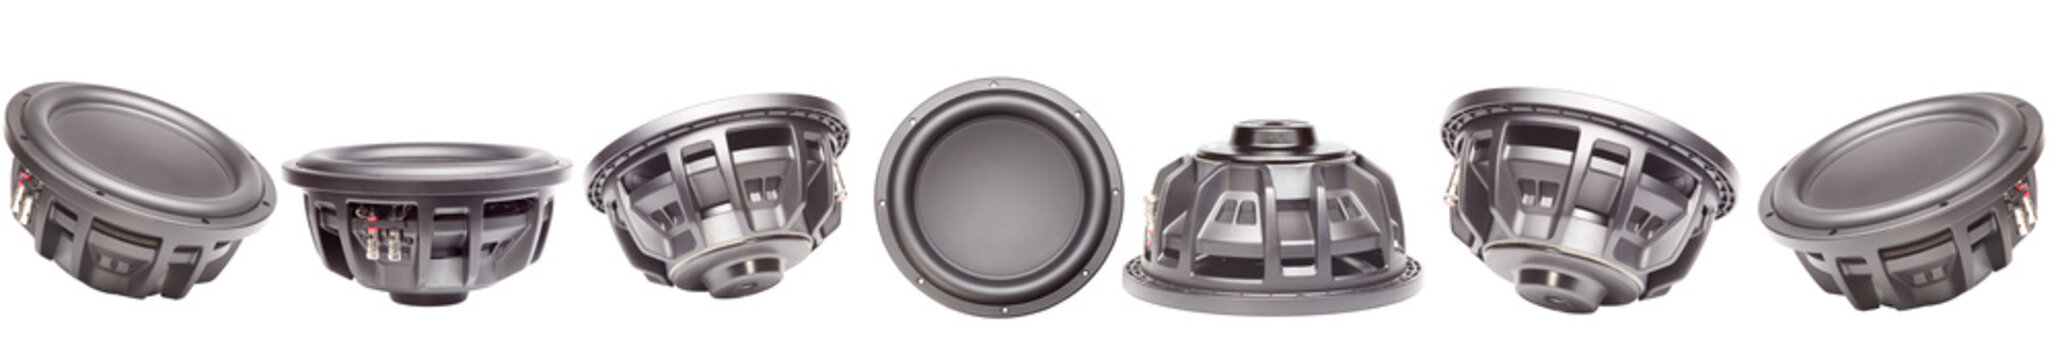 Car audio, car speakers. A set of car speakers subwoofers. Isolated white background.